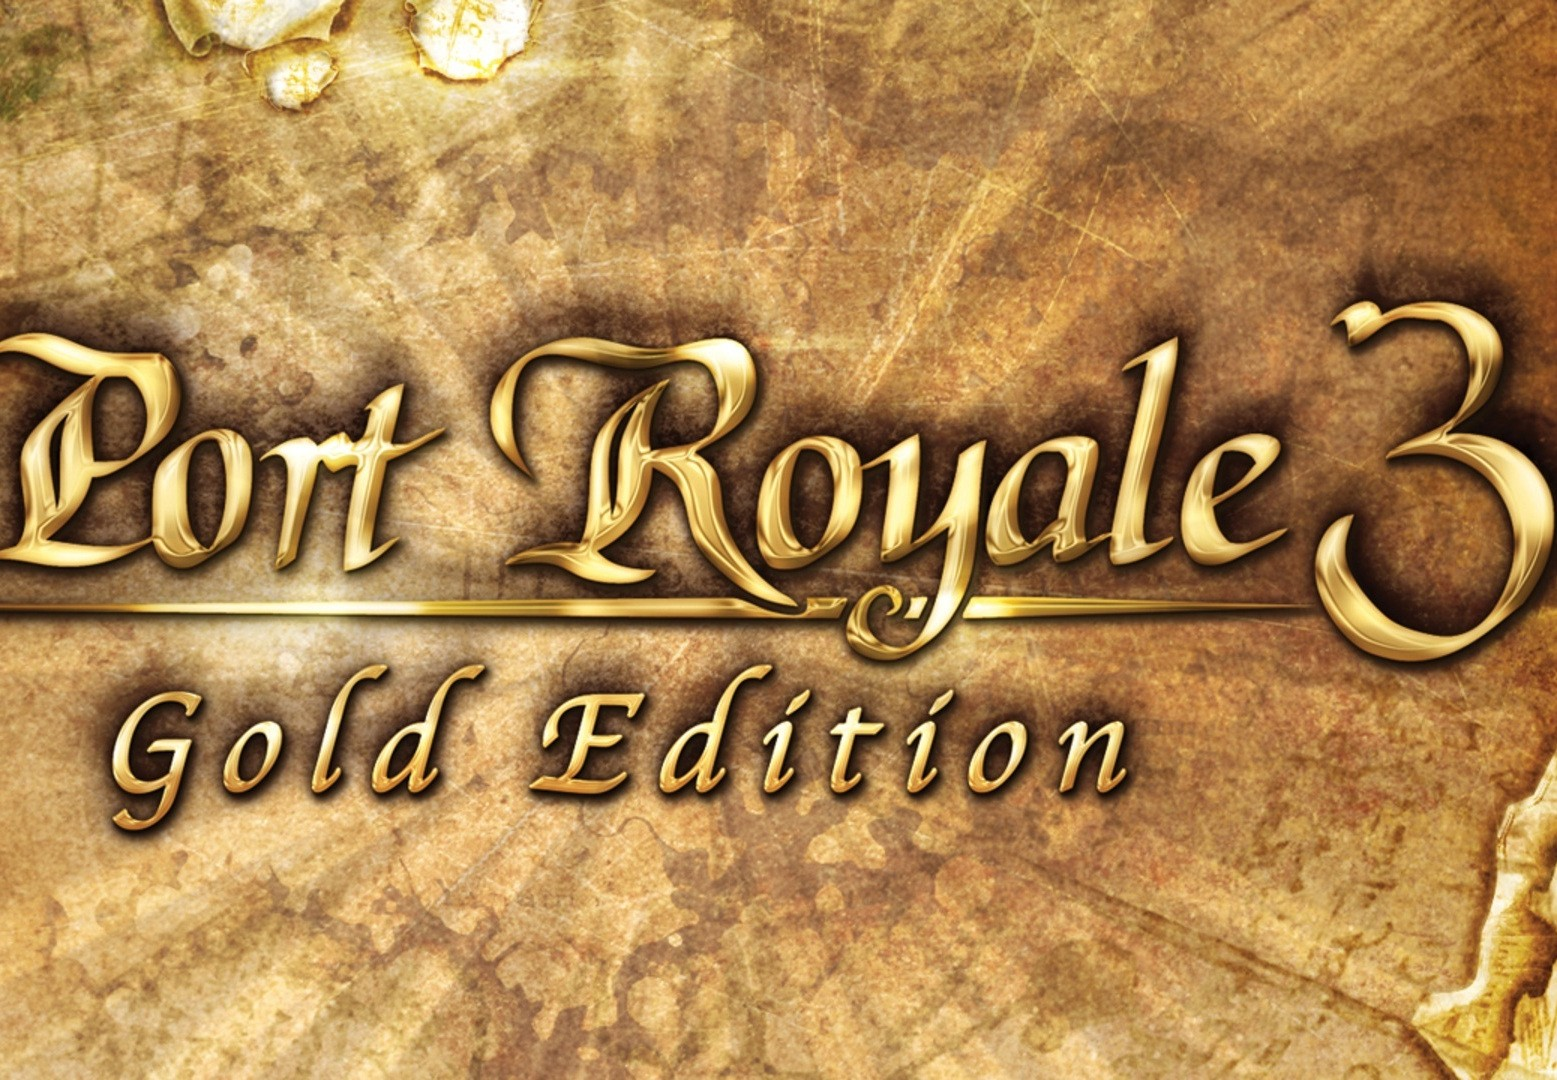 Port Royale 3 Gold Edition Free Download